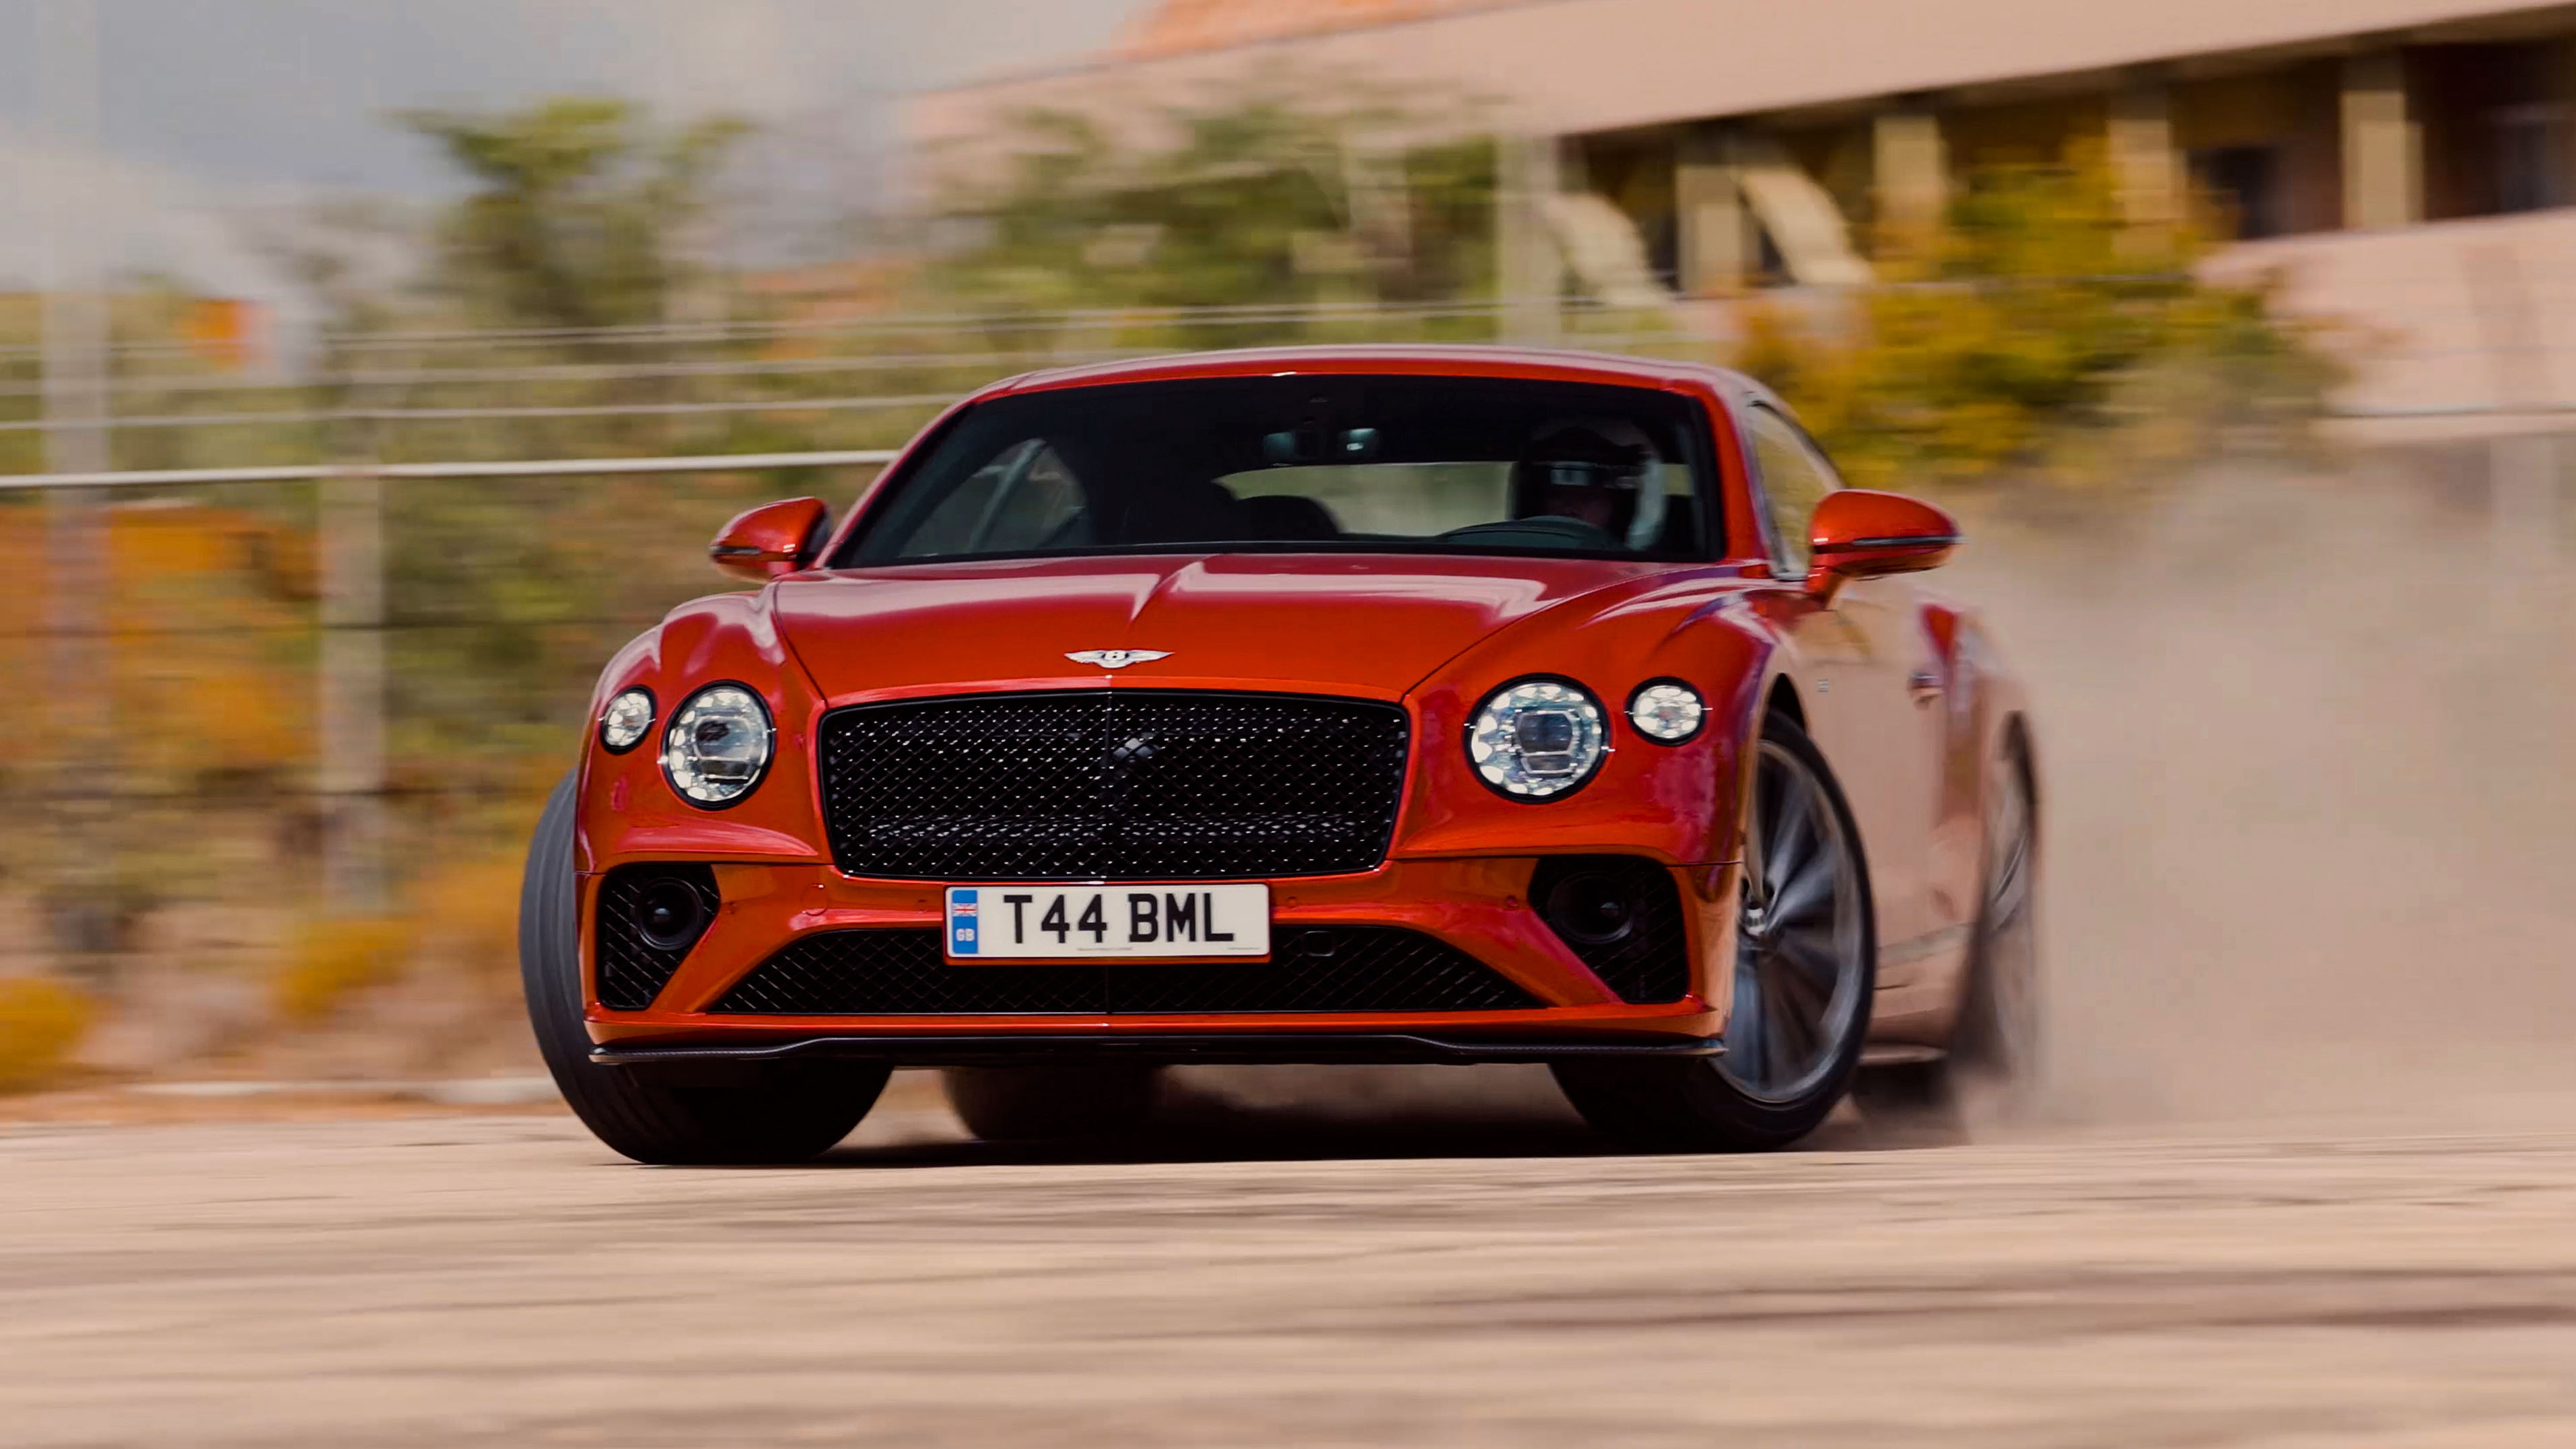 Video: The new Bentley Continental GT Speed is the fastest yet